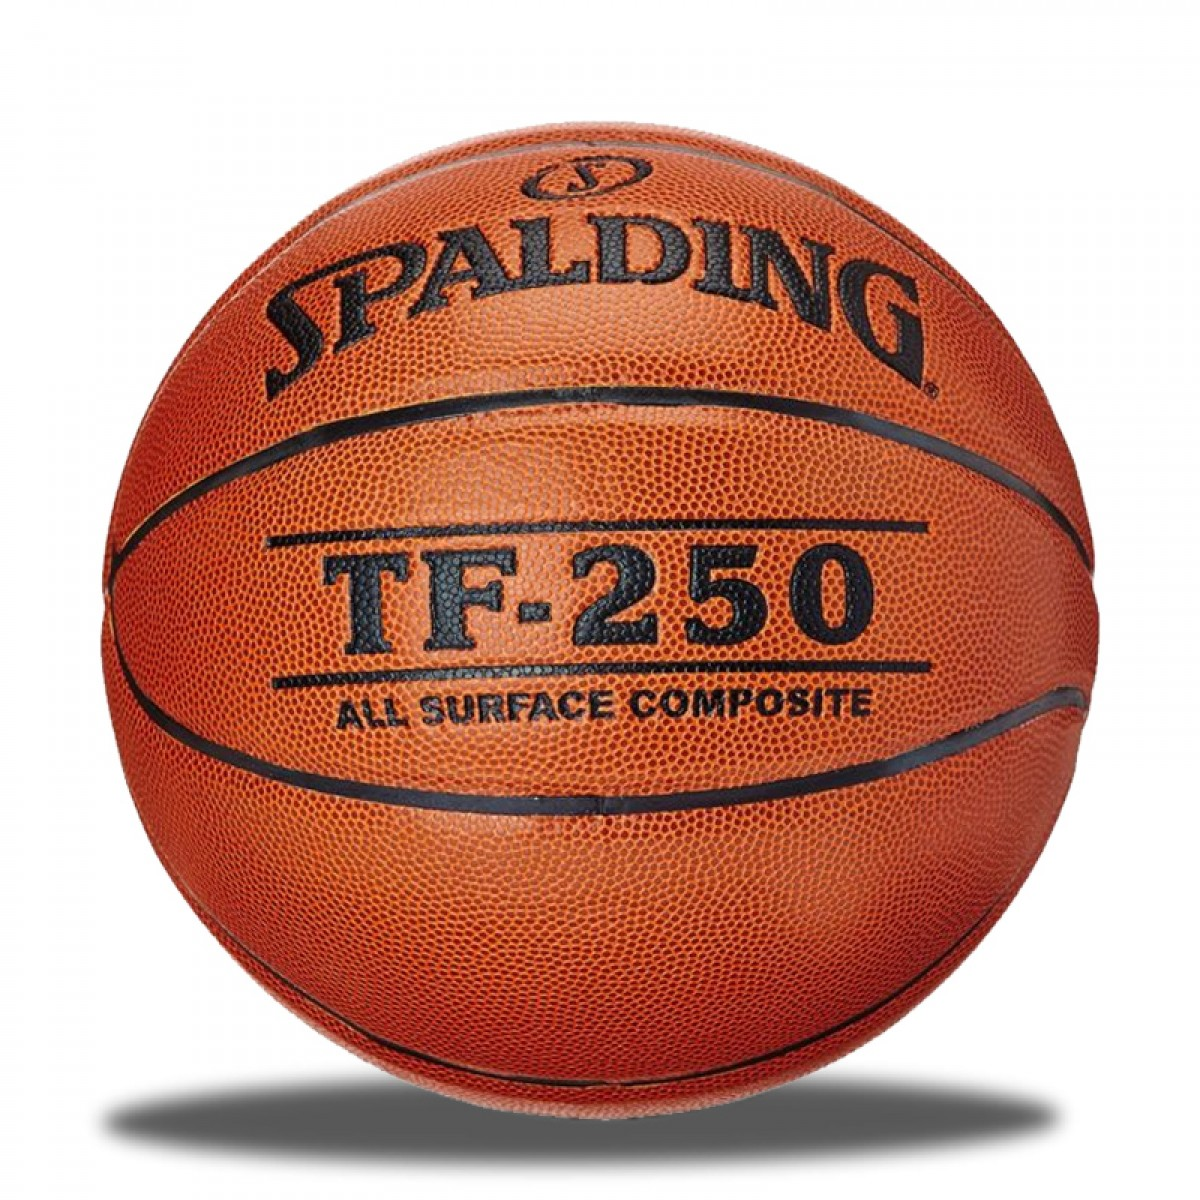 Spalding TF 250 Women